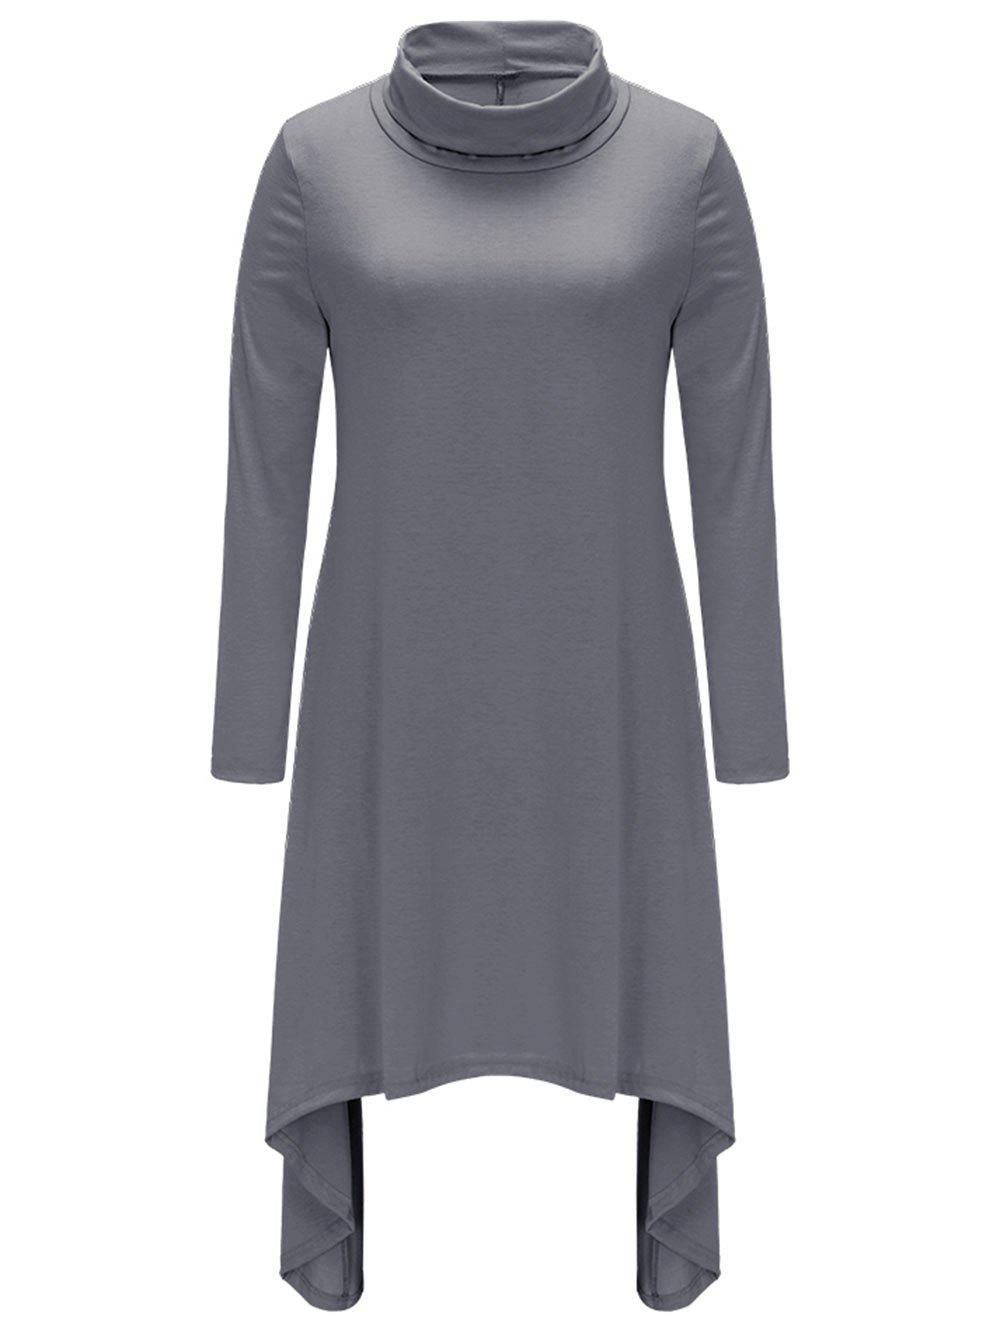 Turtle Neck Long Sleeve Asymmetric Dress - DARK GRAY L